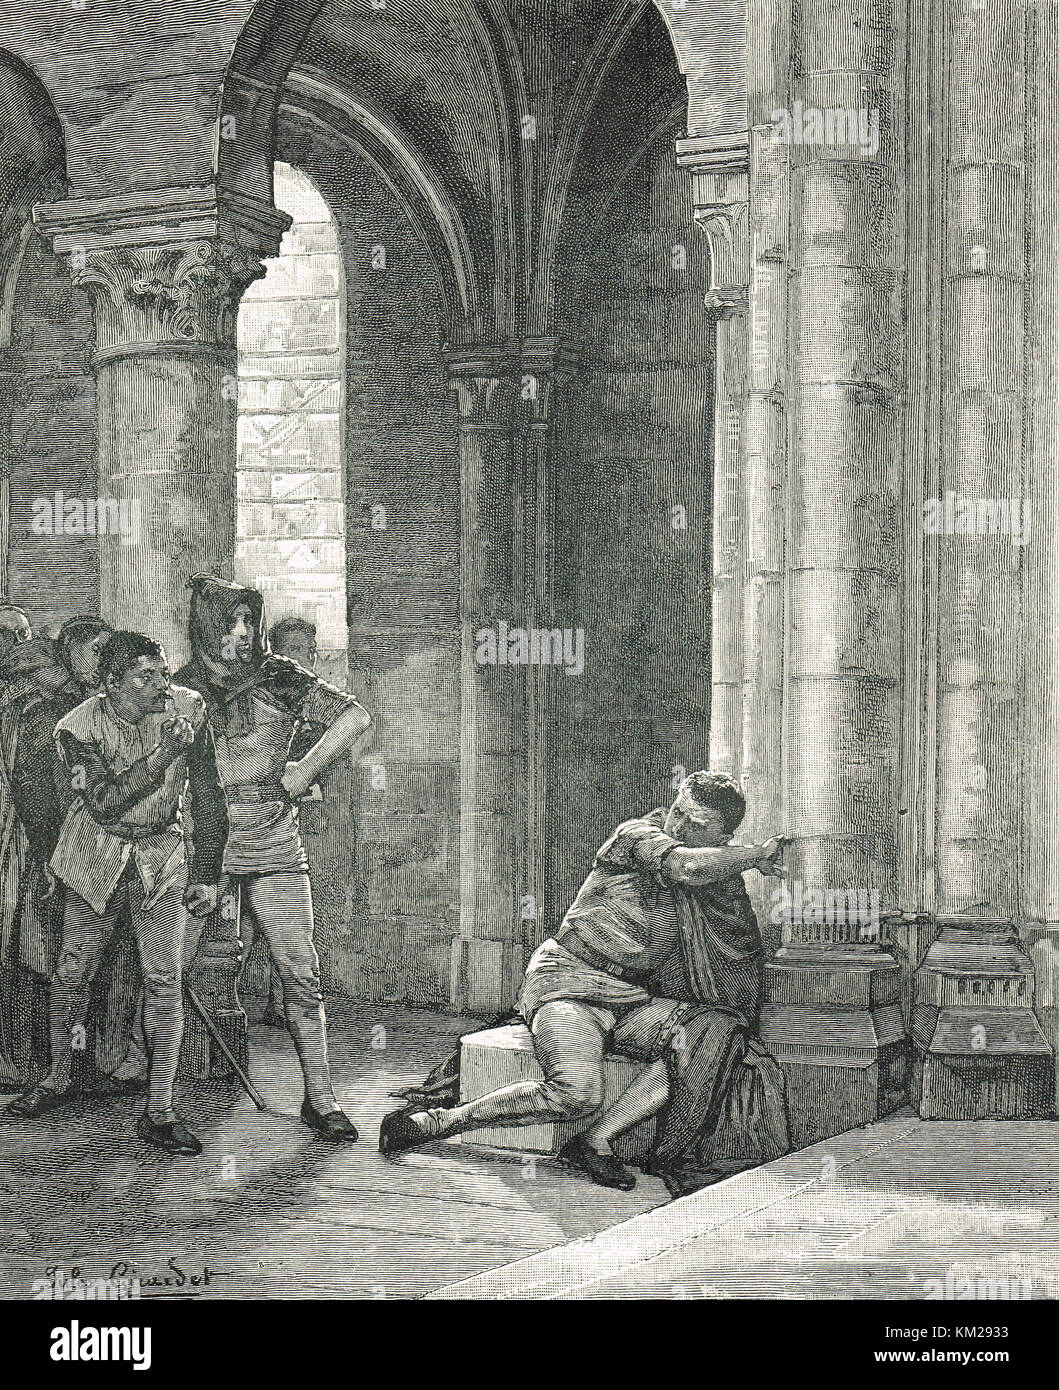 Taking Sanctuary in the middle ages - Stock Image